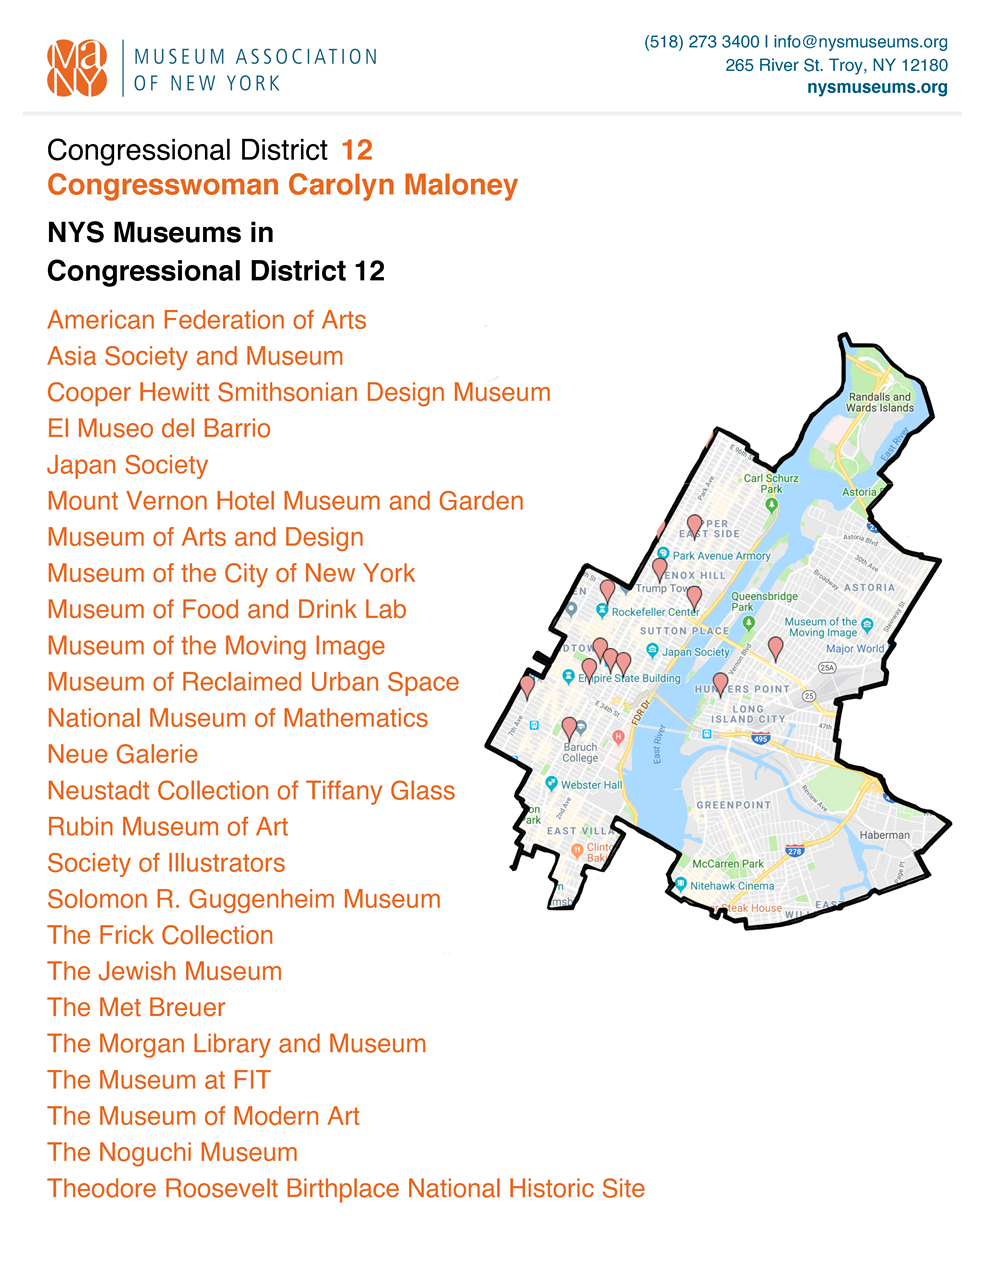 Museum Association of New York - Congressional Districts